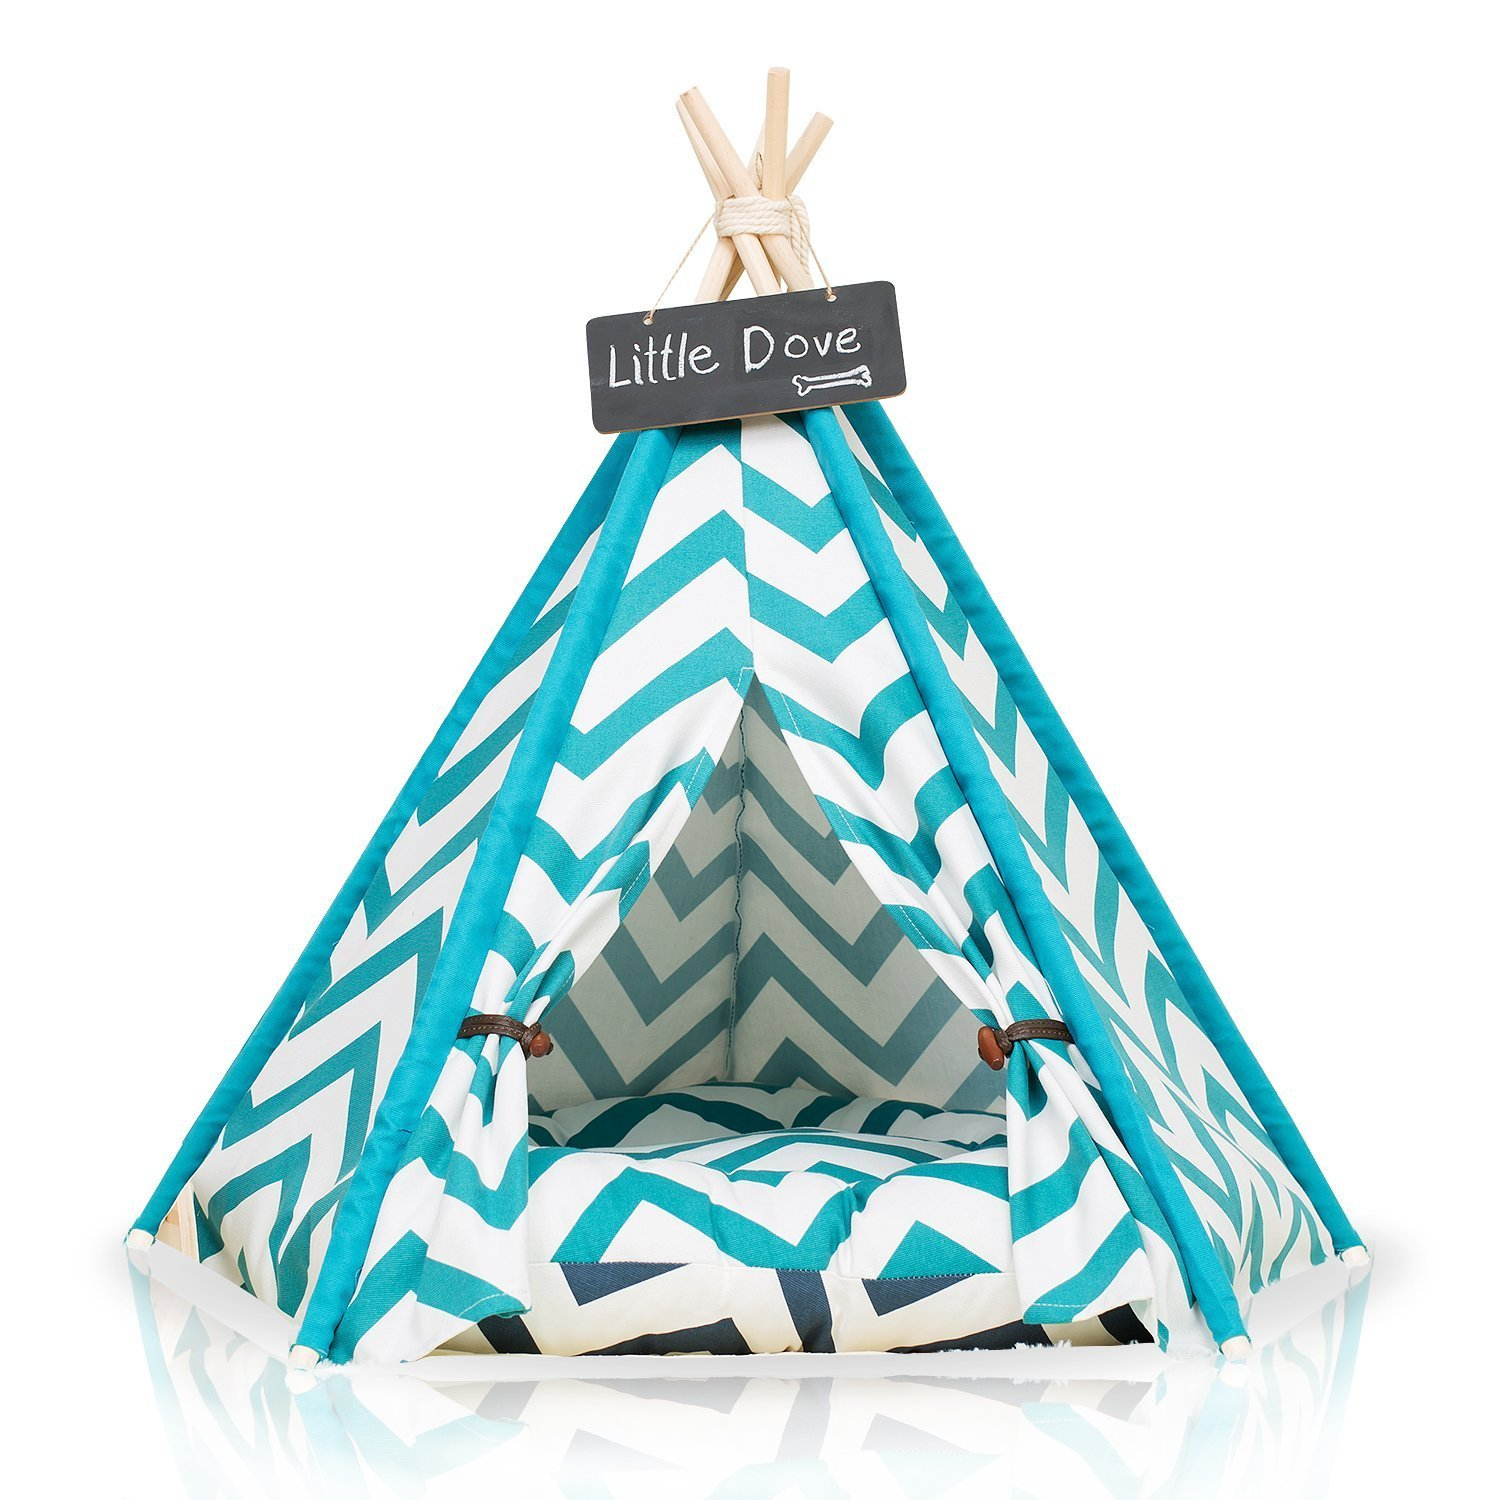 little dove Pet Teepee Dog(Puppy) & Cat Bed - Portable Pet Tents & Houses for Dog(Puppy) & Cat Blue Strip Style 28 Inch with Cushion by little dove